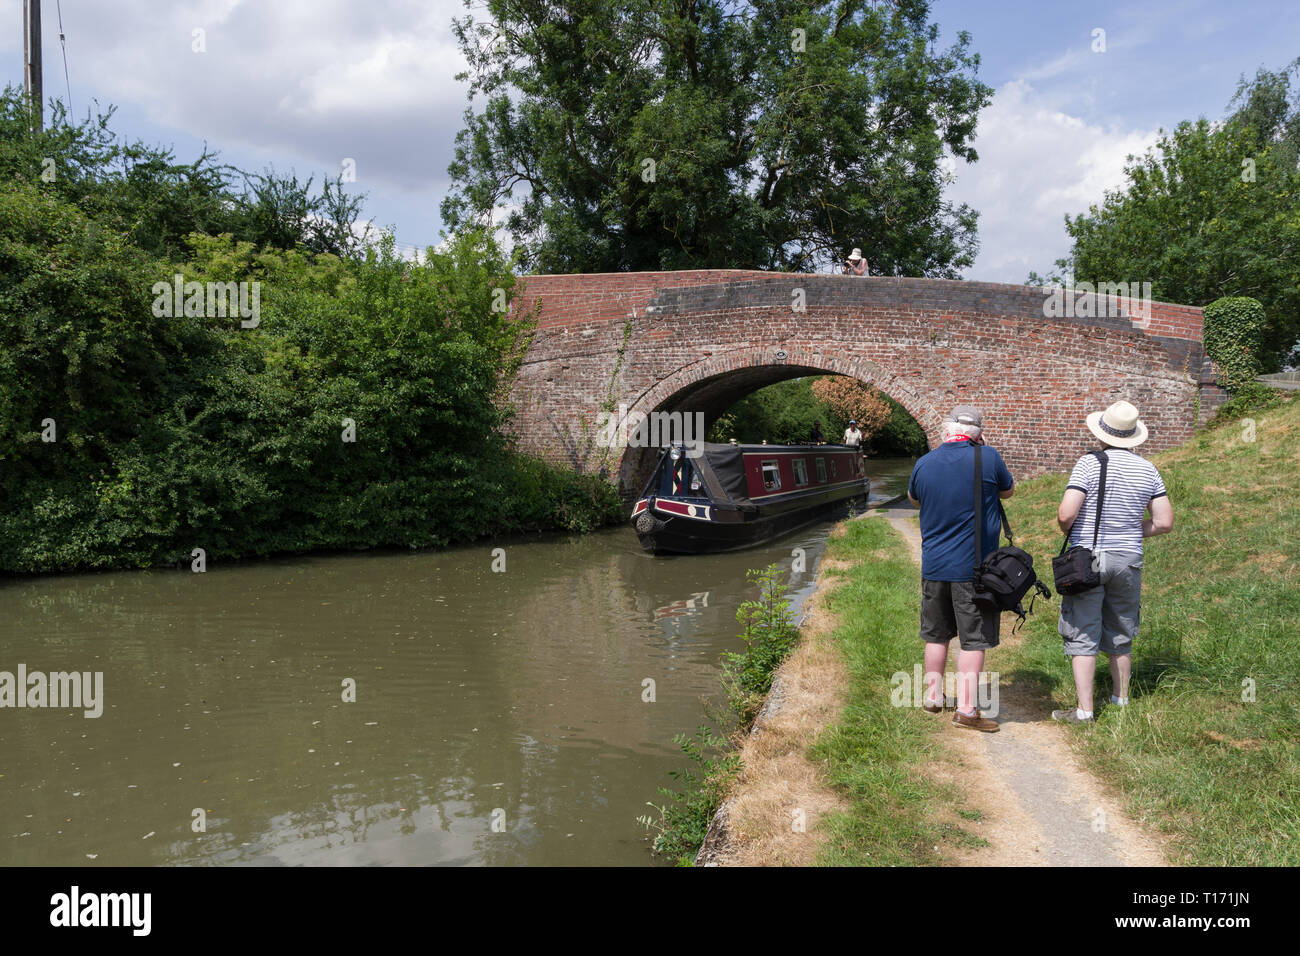 Three seniors, members of a U3A photography group, taking photos of a narrowboat on the canal at Blisworth, Northamptonshire, UK - Stock Image